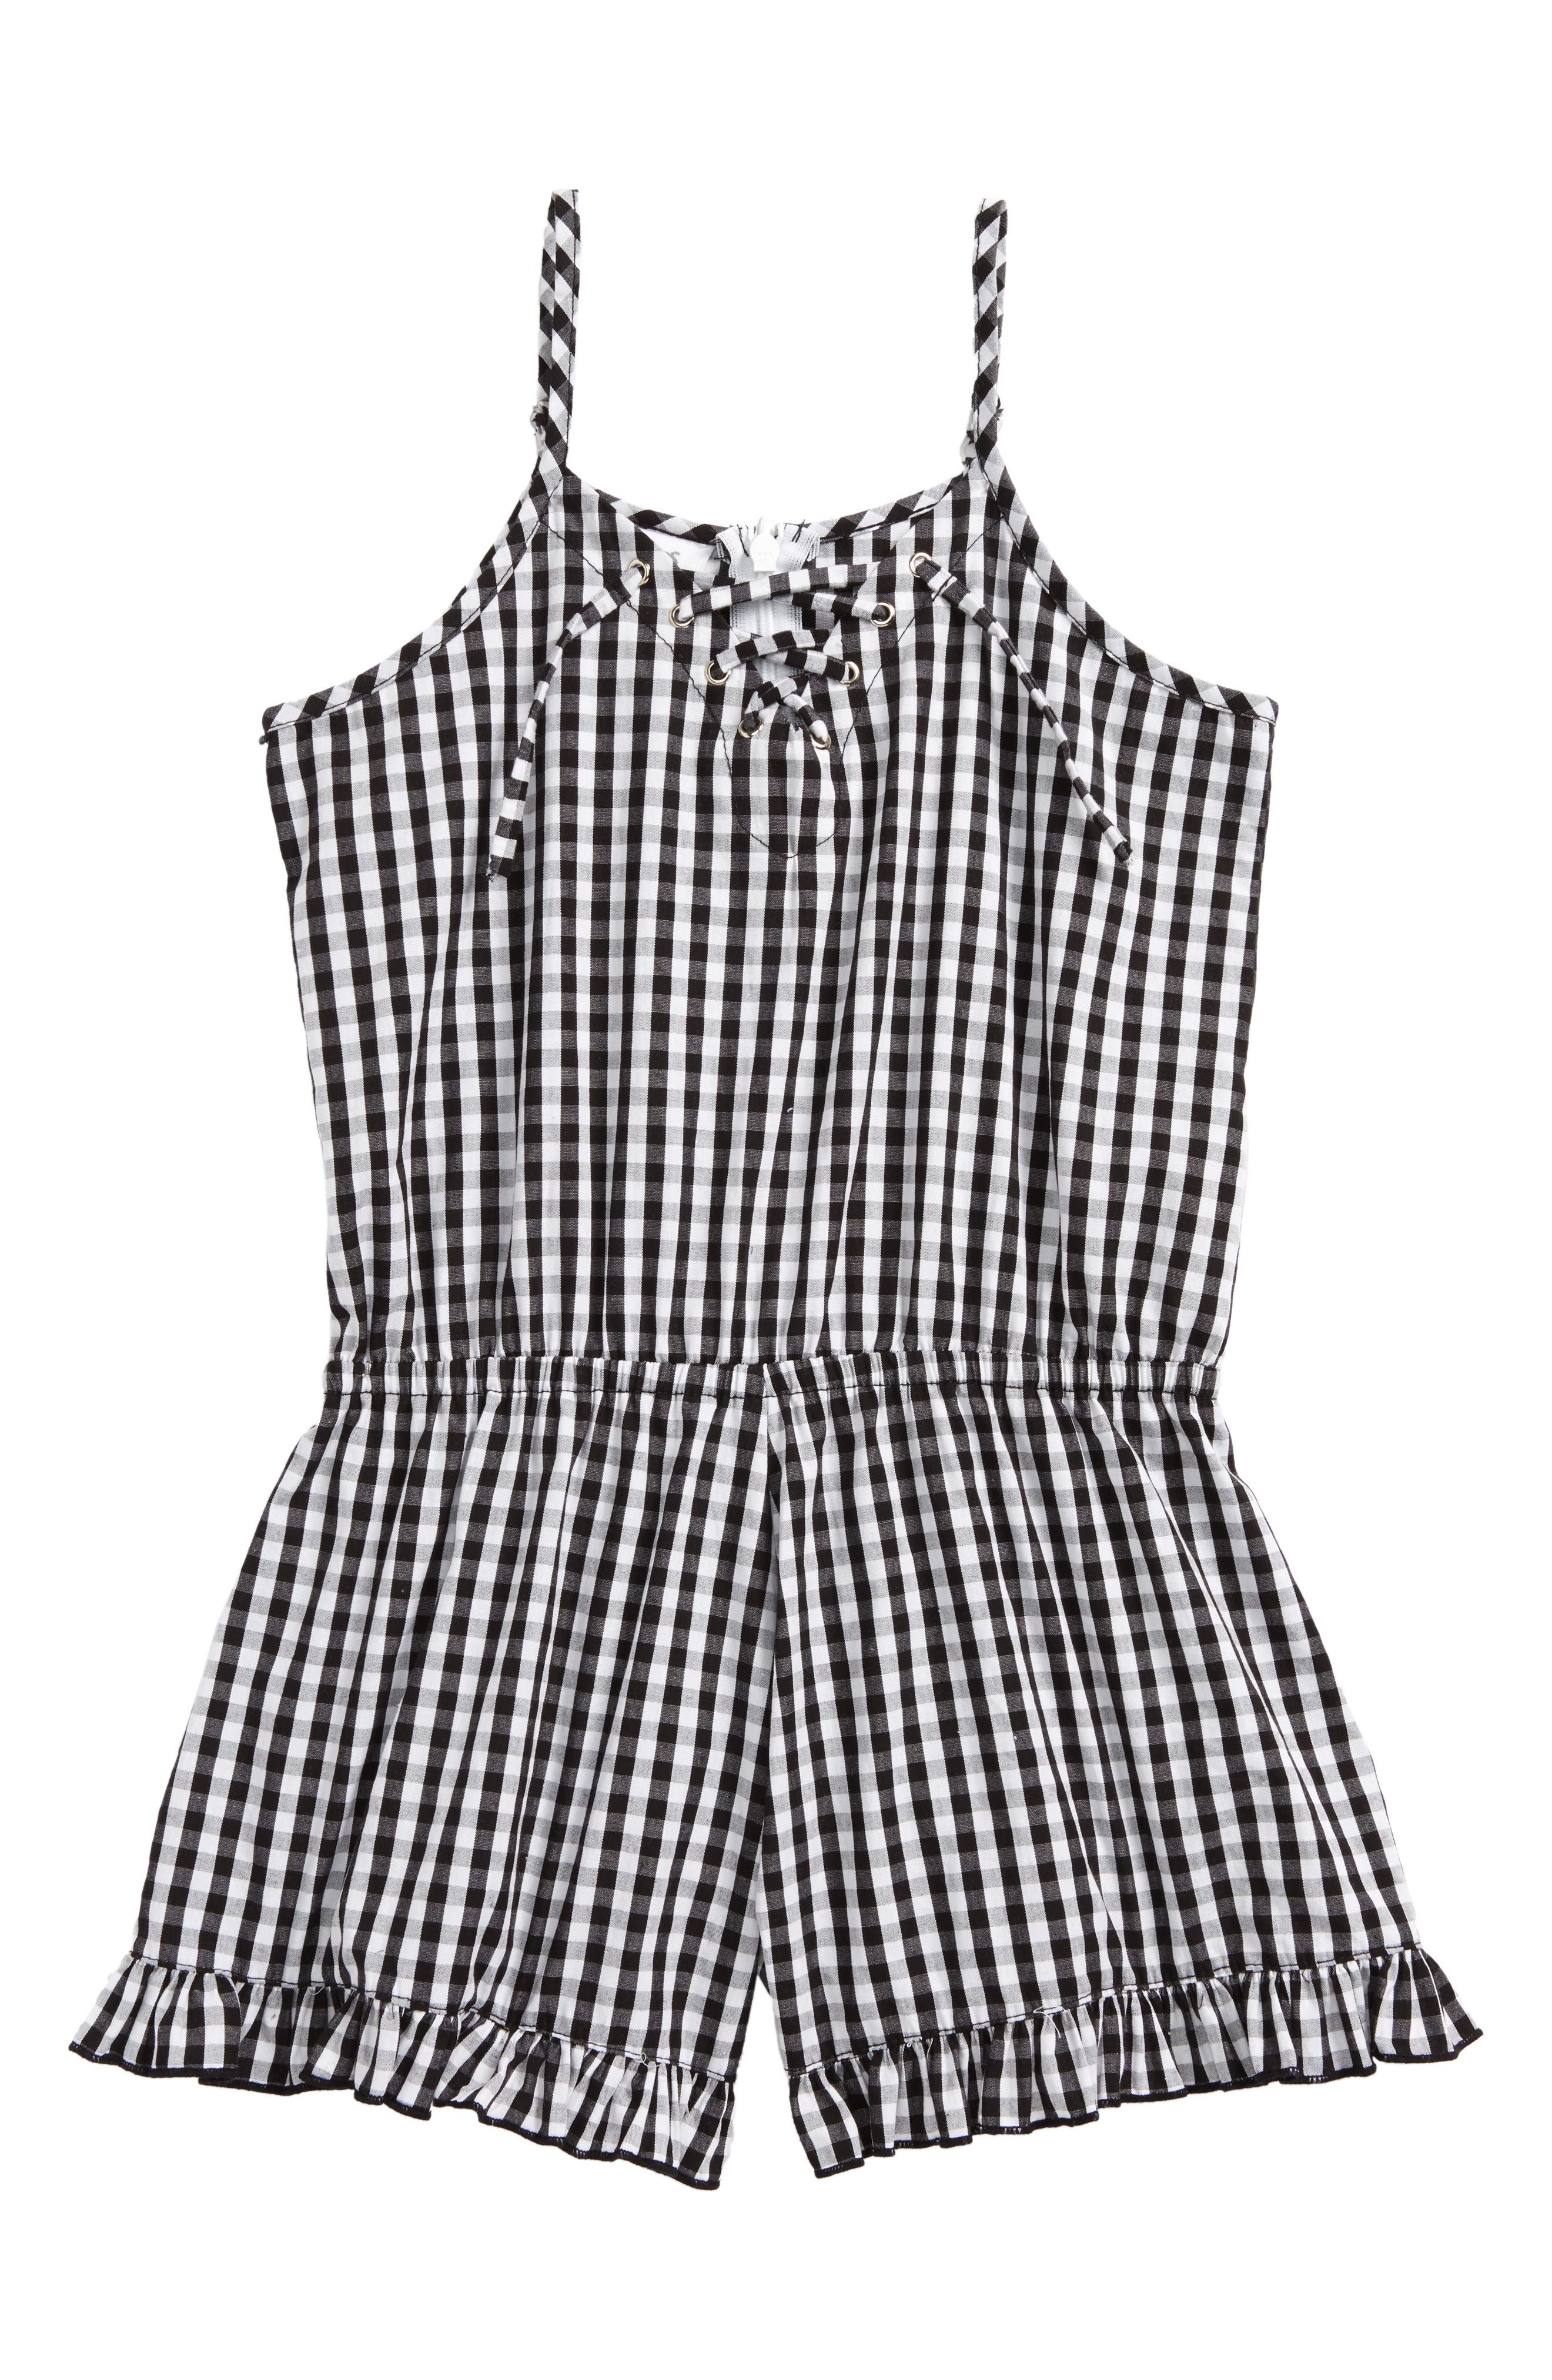 Gingham Romper,                             Main thumbnail 1, color,                             Black-Whbcgm-Ginggham-Whbcgm